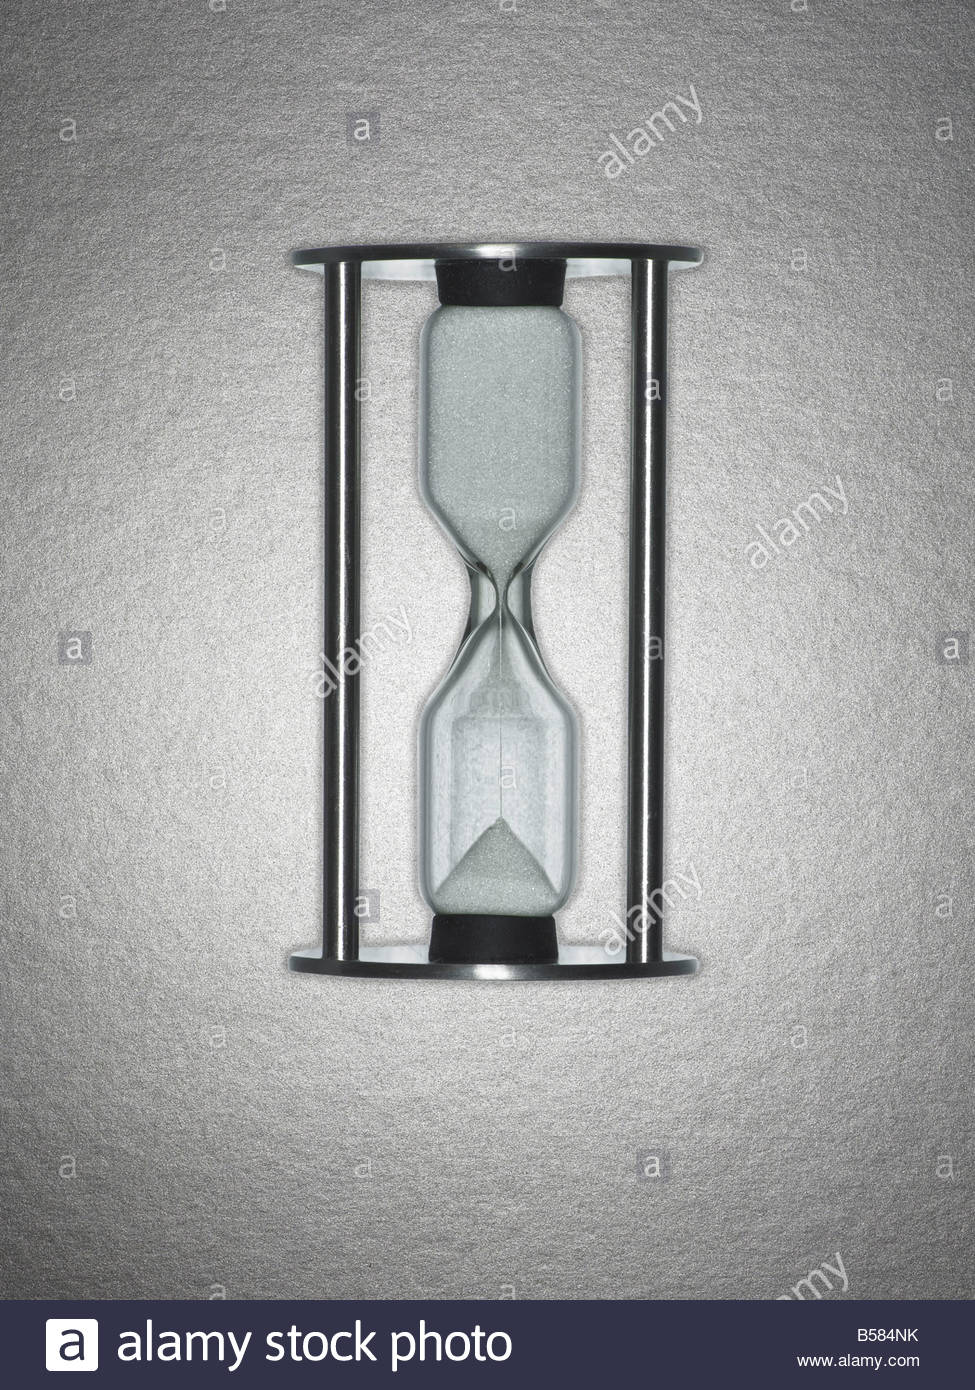 Hourglass draining sand - Stock Image